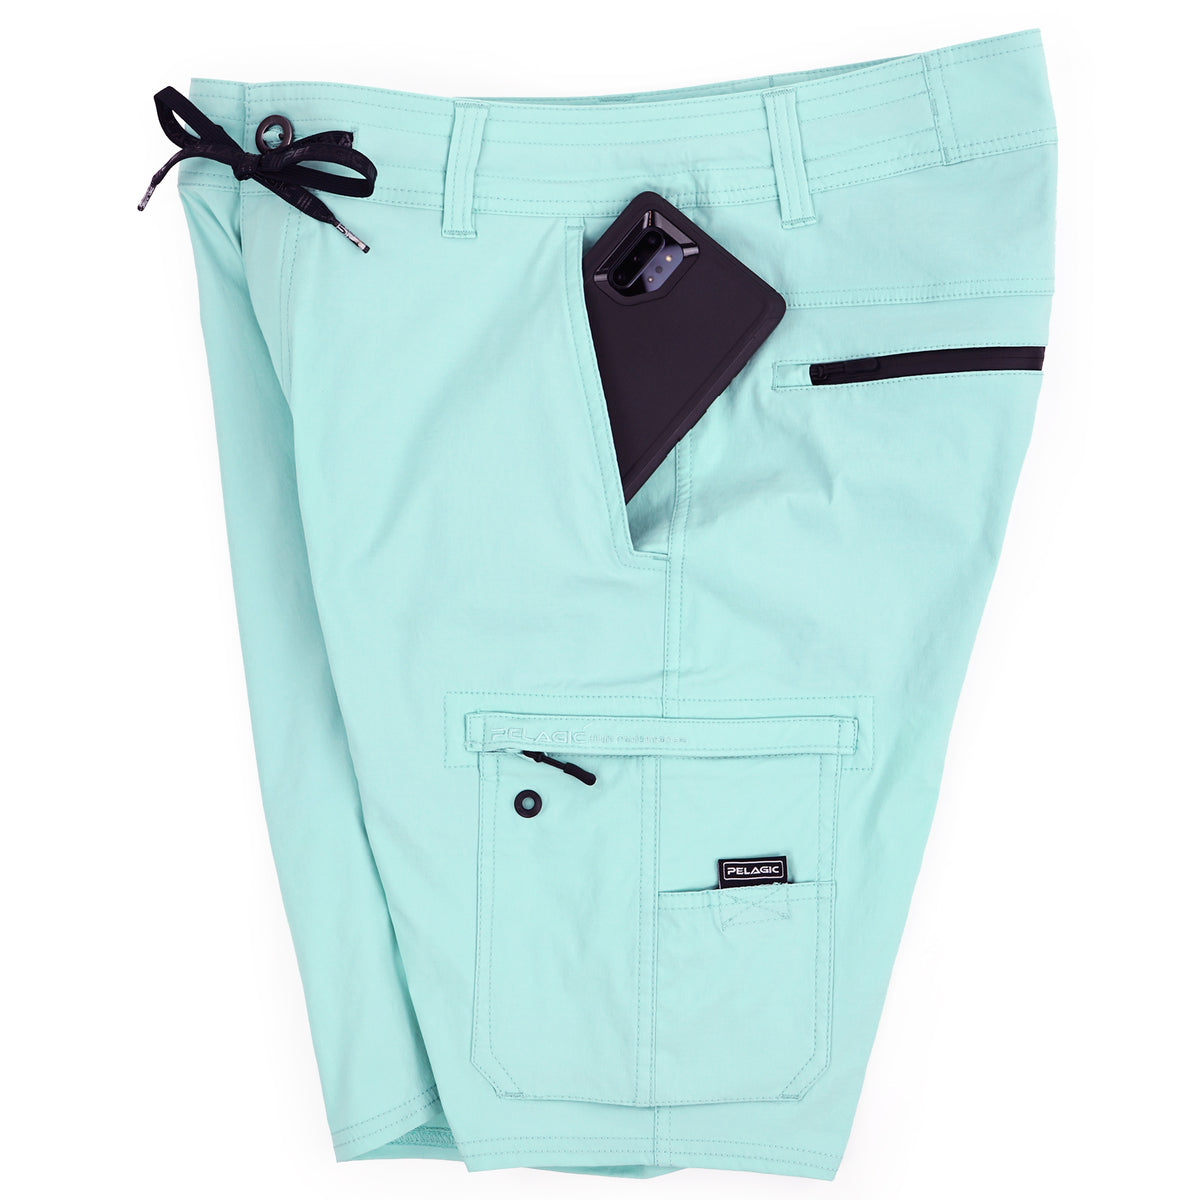 Traverse Hybrid Fishing Shorts Big Image - 3